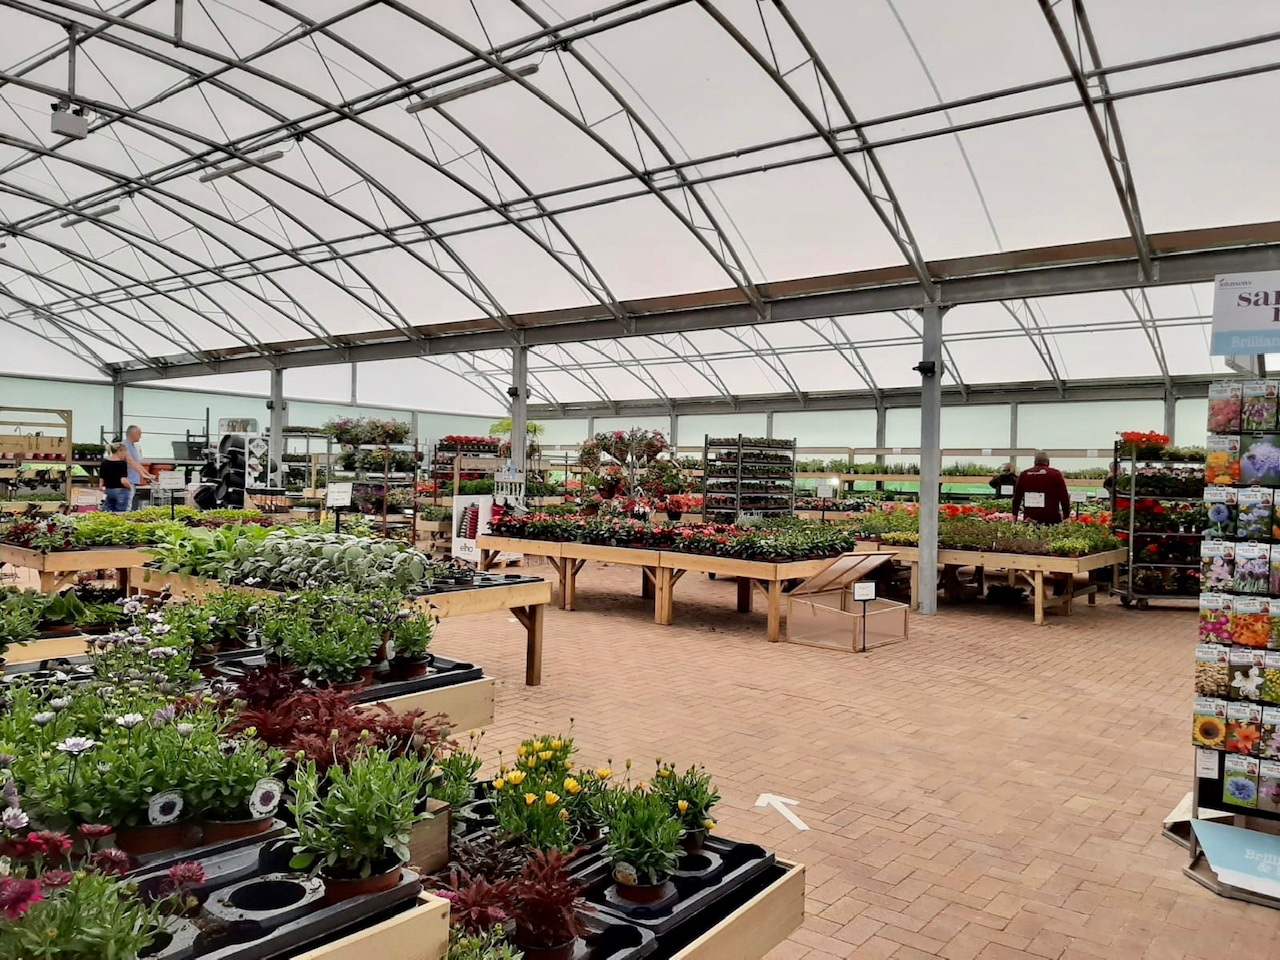 Have you visited The Plant House yet? Full of Perrywood Grown plants